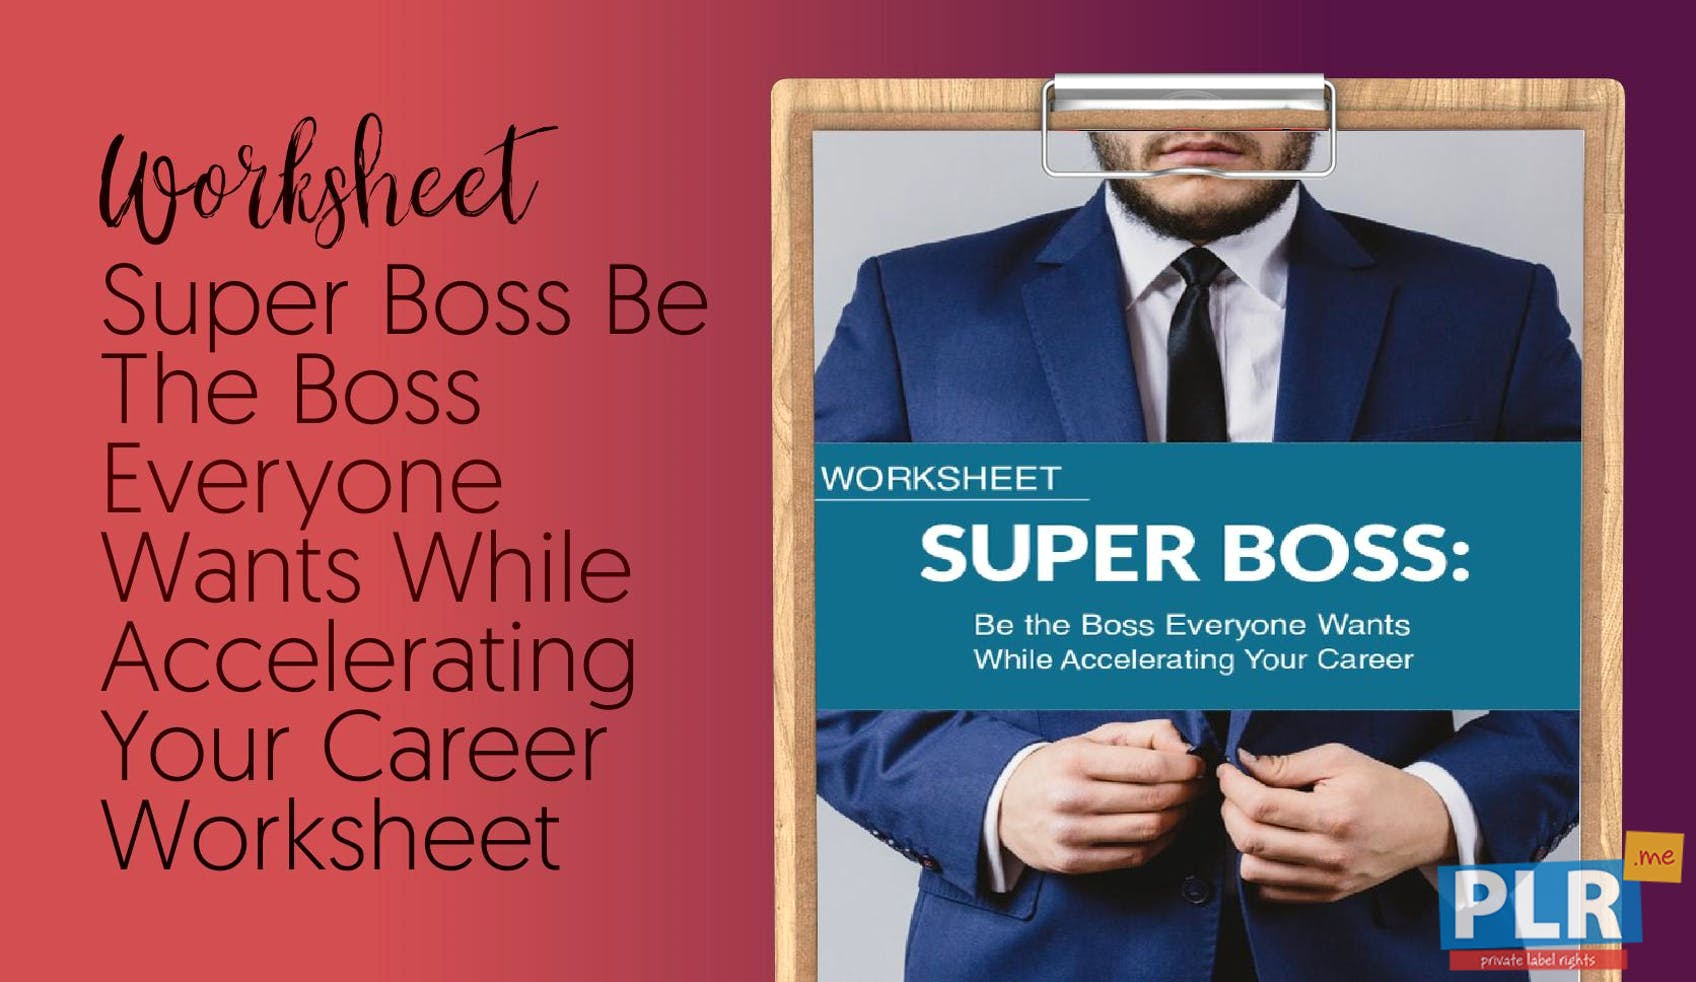 PLR Worksheets - Super Boss Be The Boss Everyone Wants While ...